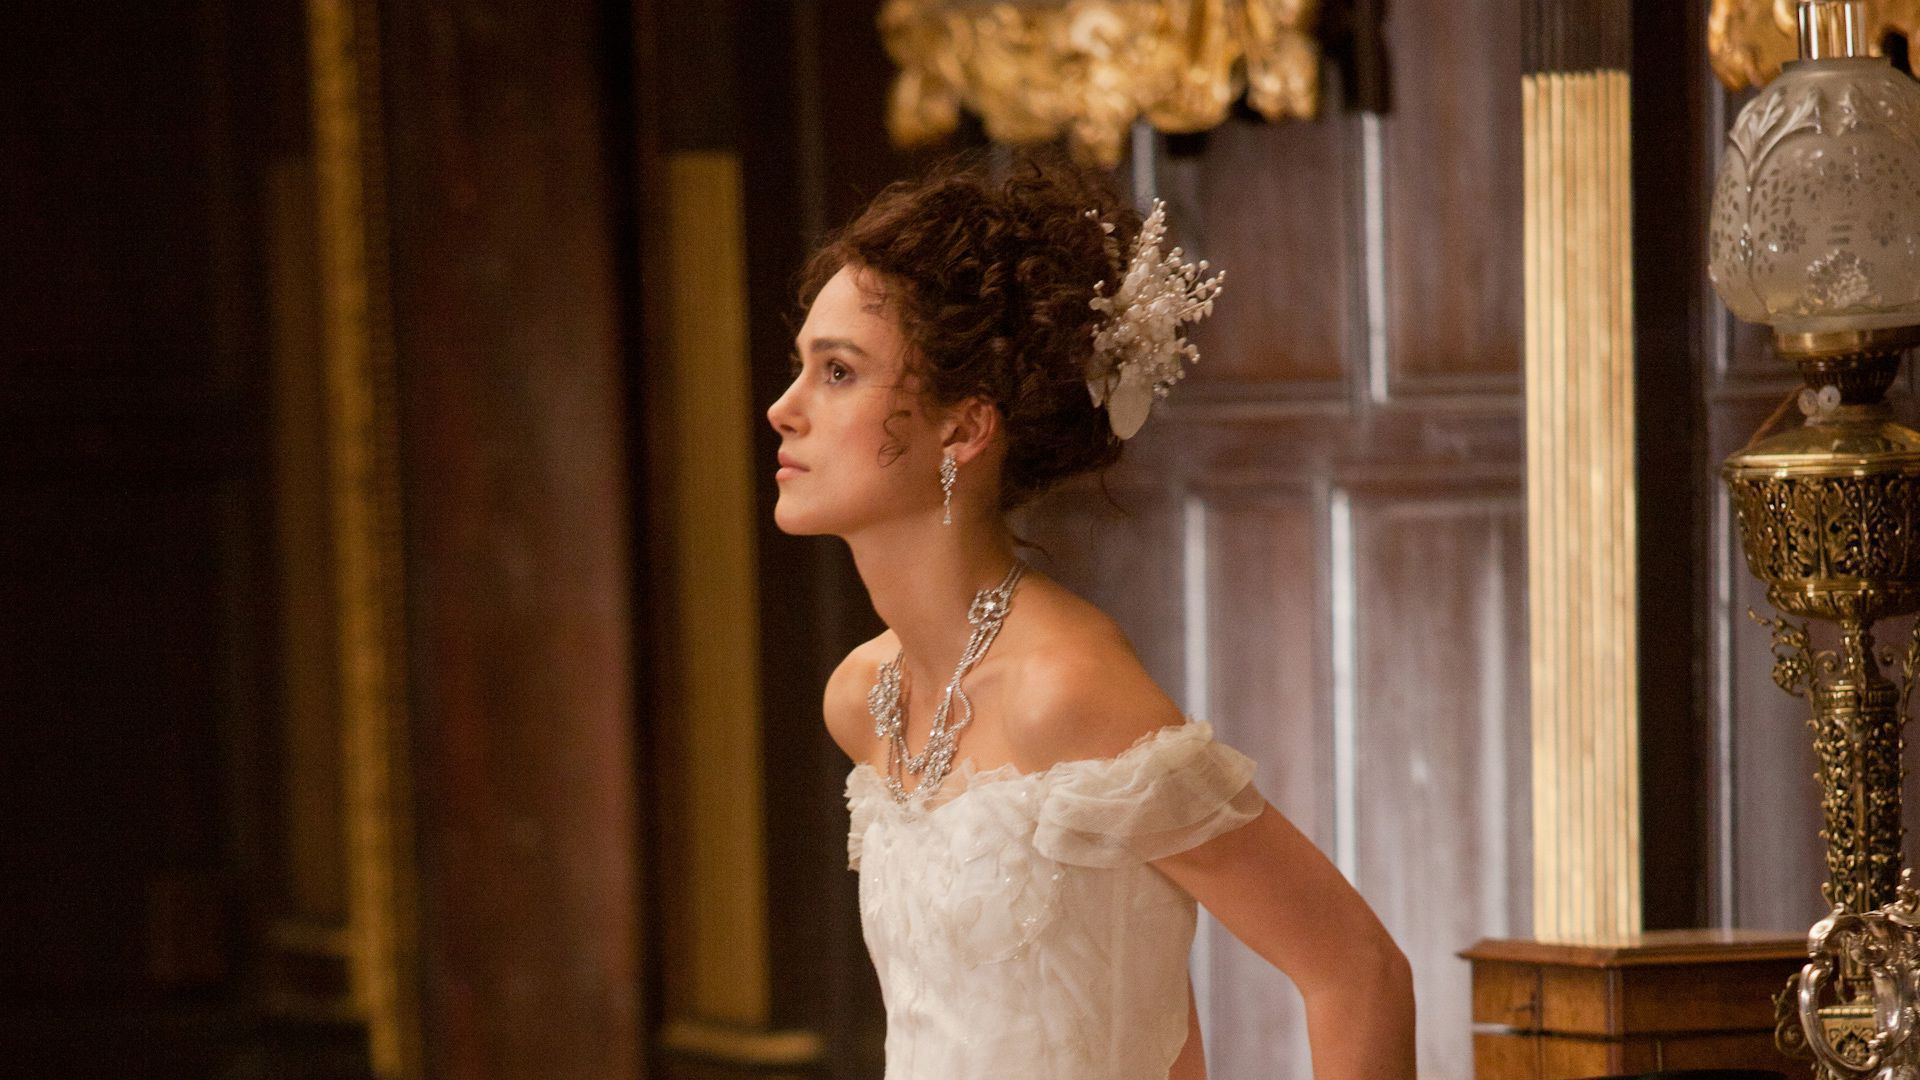 Anna Karenina Wallpapers HD